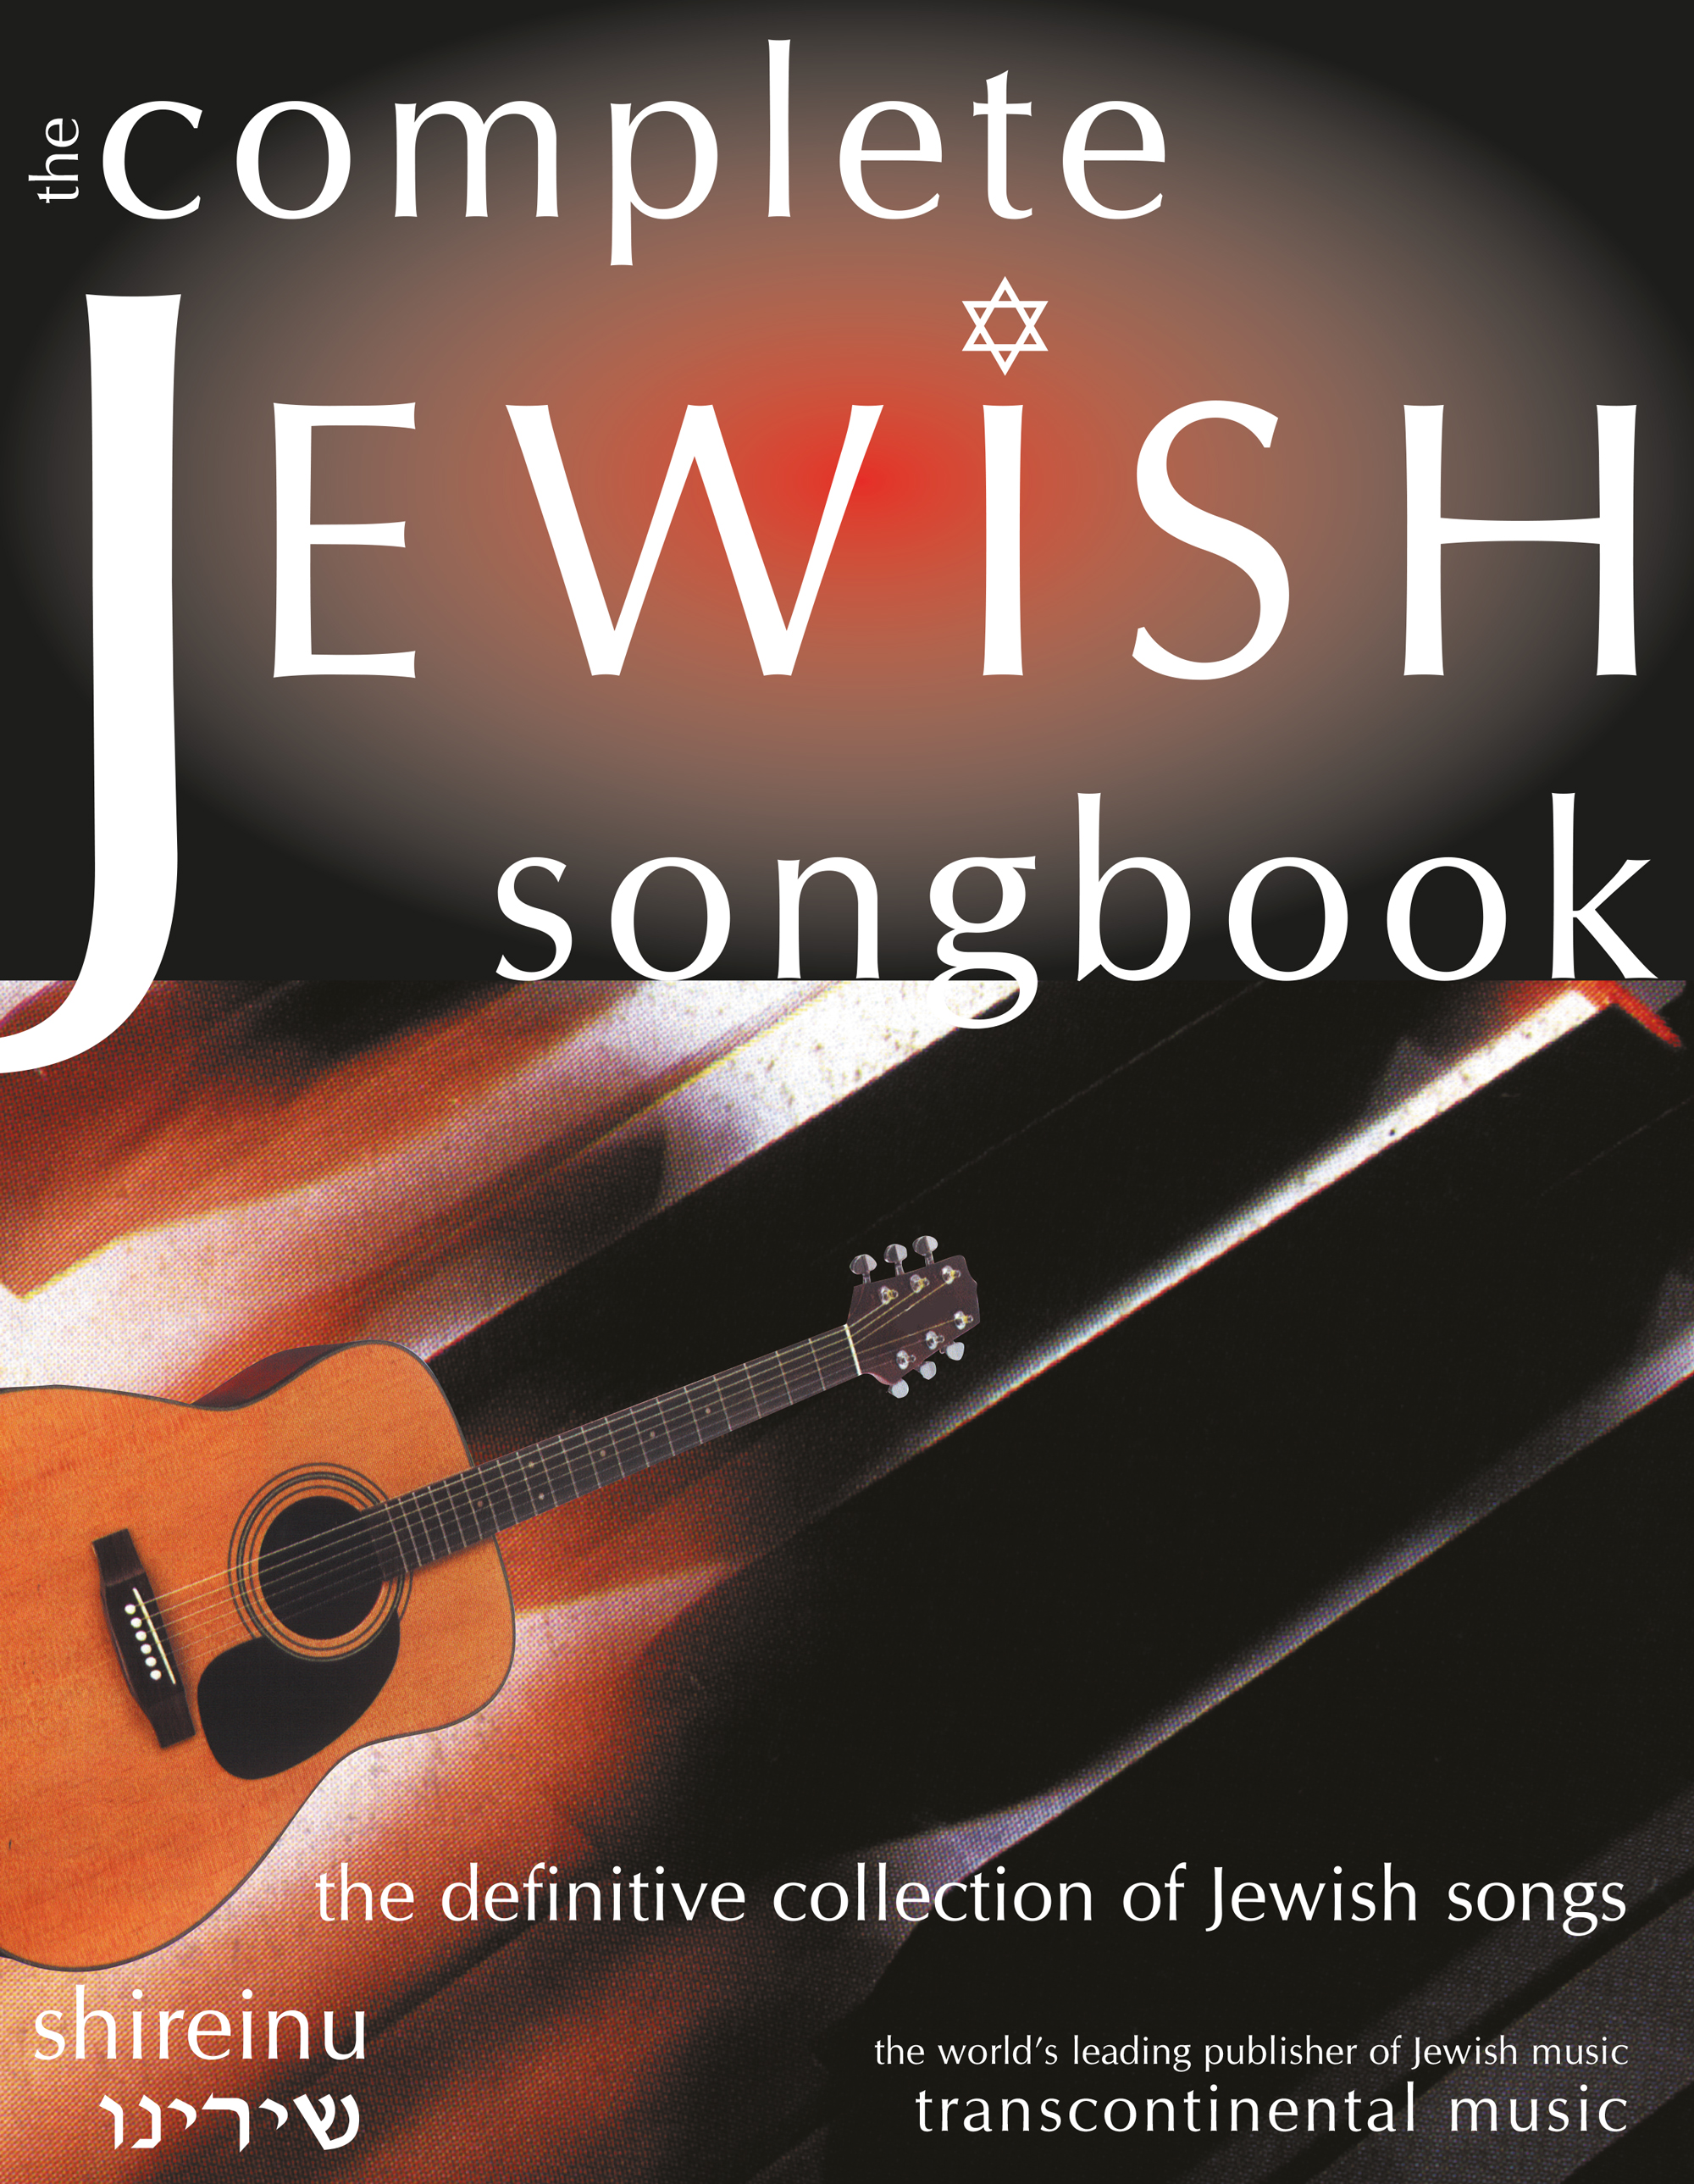 Complete-Jewish-Songbook-COVER.jpg